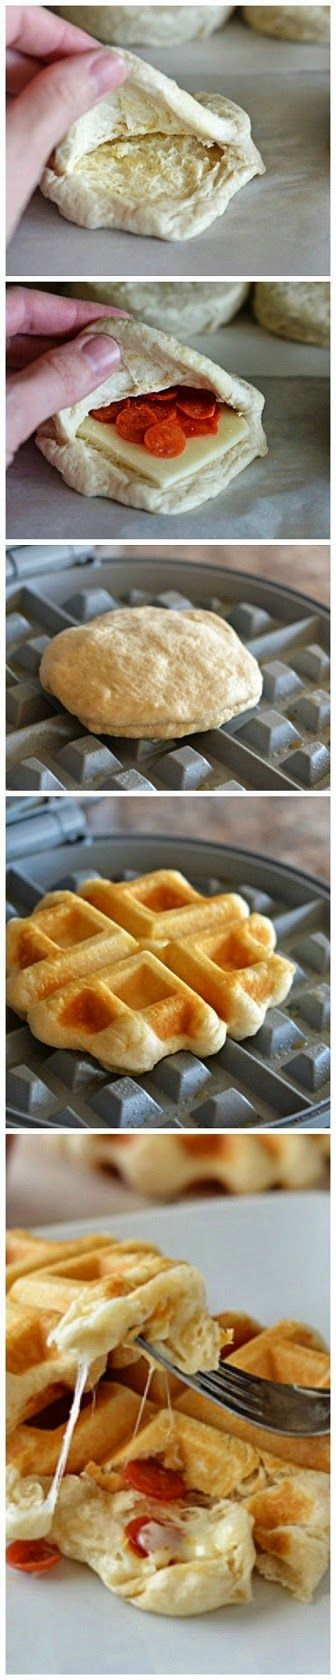 Exclusive Foods: Easy Pizza Waffles Recipe